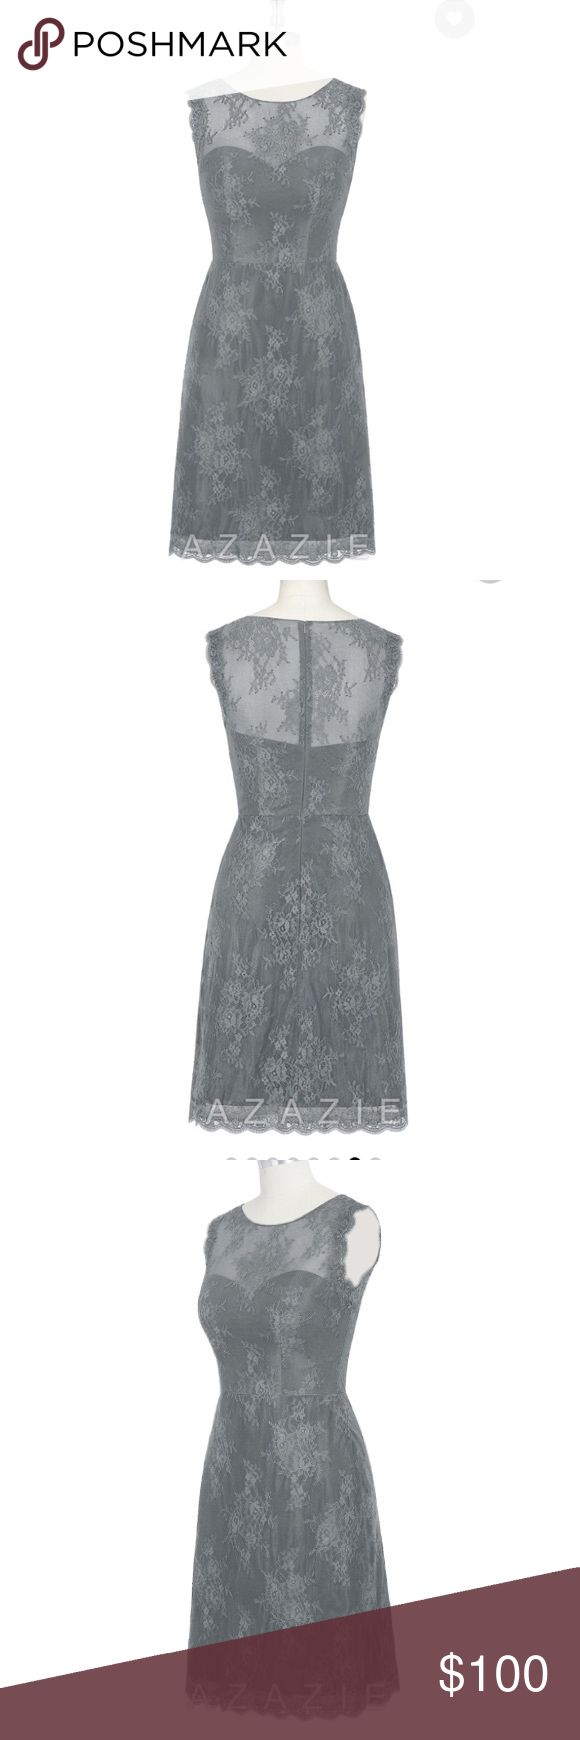 Azazie Zaria Steel Grey Bridesmaid Dress Lace, knee length column cut dress with scoop neckline. Steel grey color. Size 6. Perfect bridesmaid dress (fits the grey/pewter color scheme), and brand new, never worn. Azazie Inc Dresses Wedding